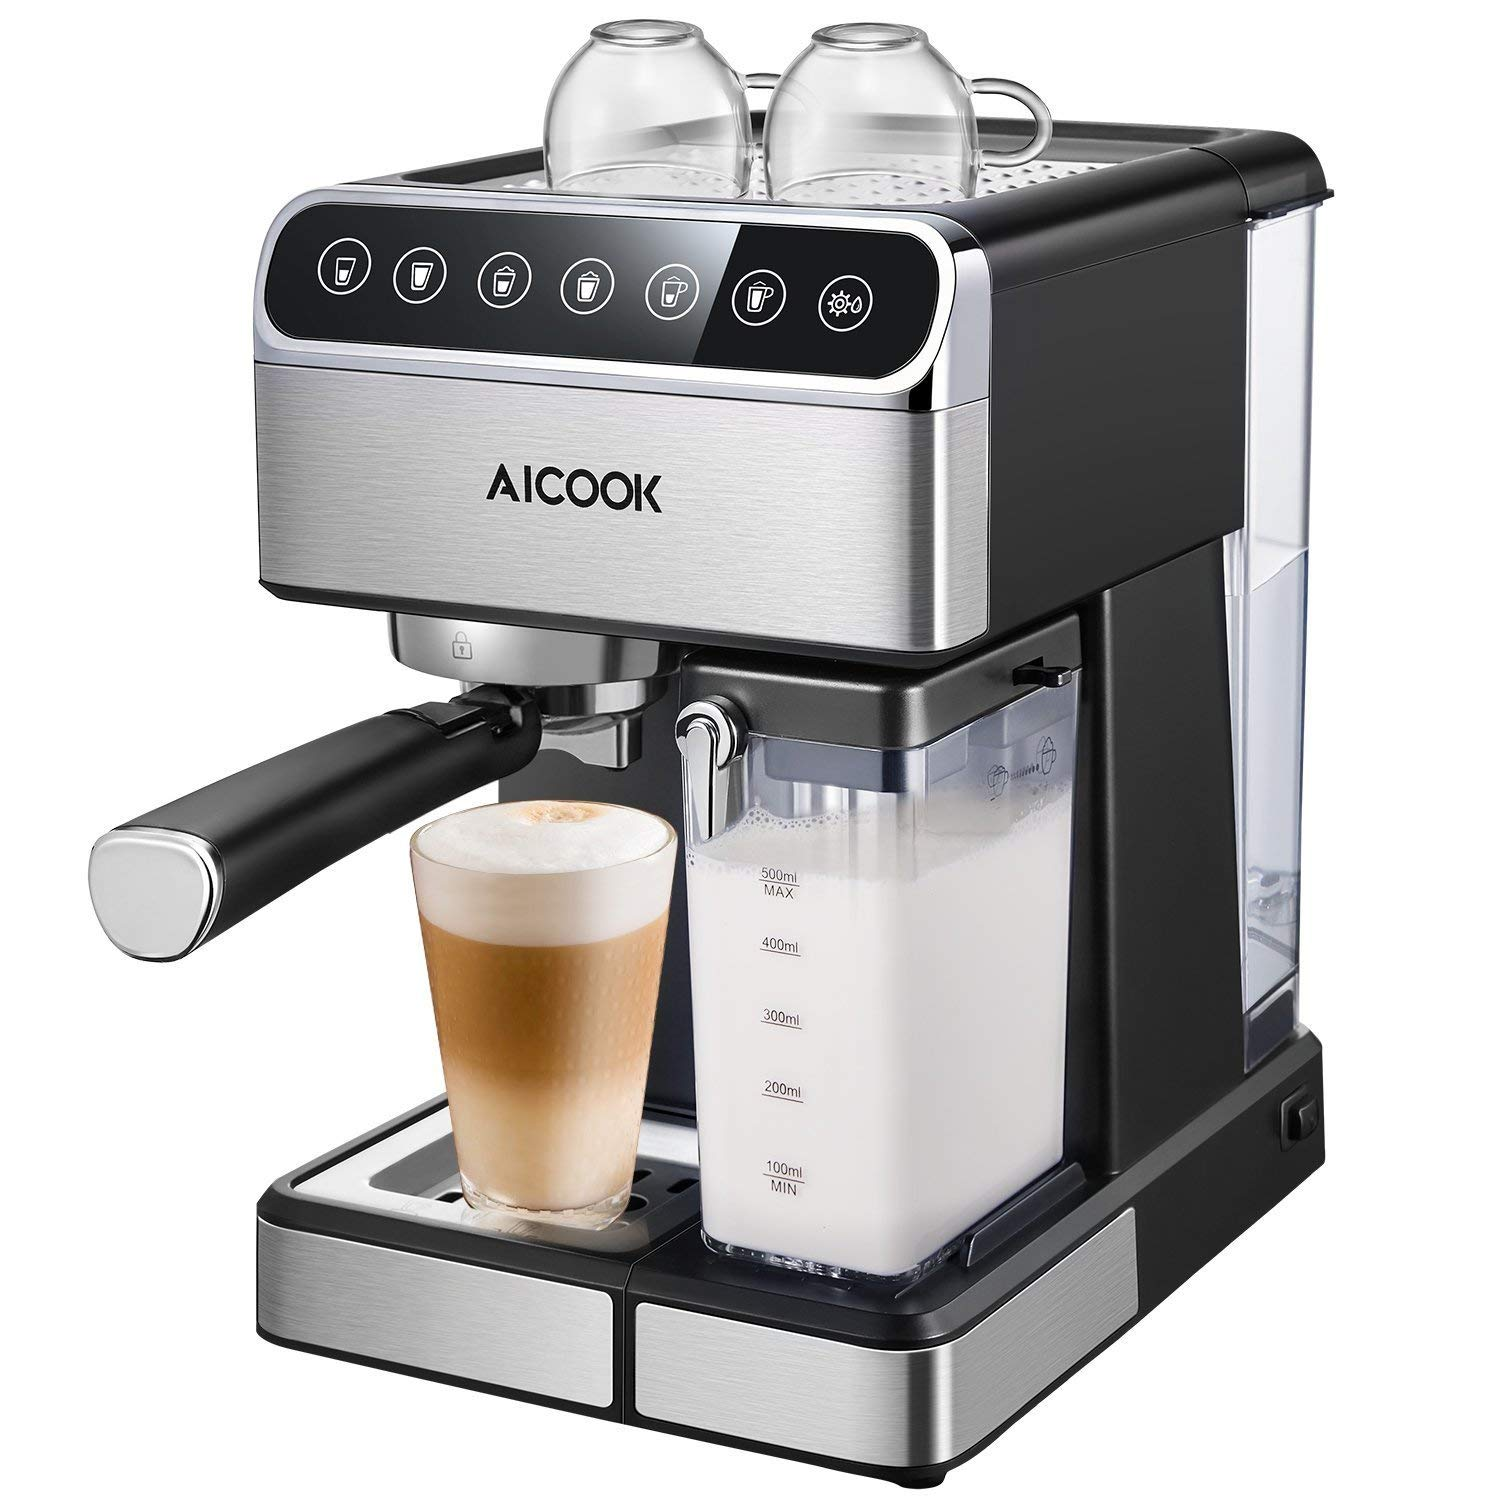 Aicook Espresso Machine, Barista Espresso Coffee Maker with One Touch Digital Screen, 15 Bar Pump and Automatic Milk Frother, Cappuccino Maker, Latte maker by AICOOK (Image #1)